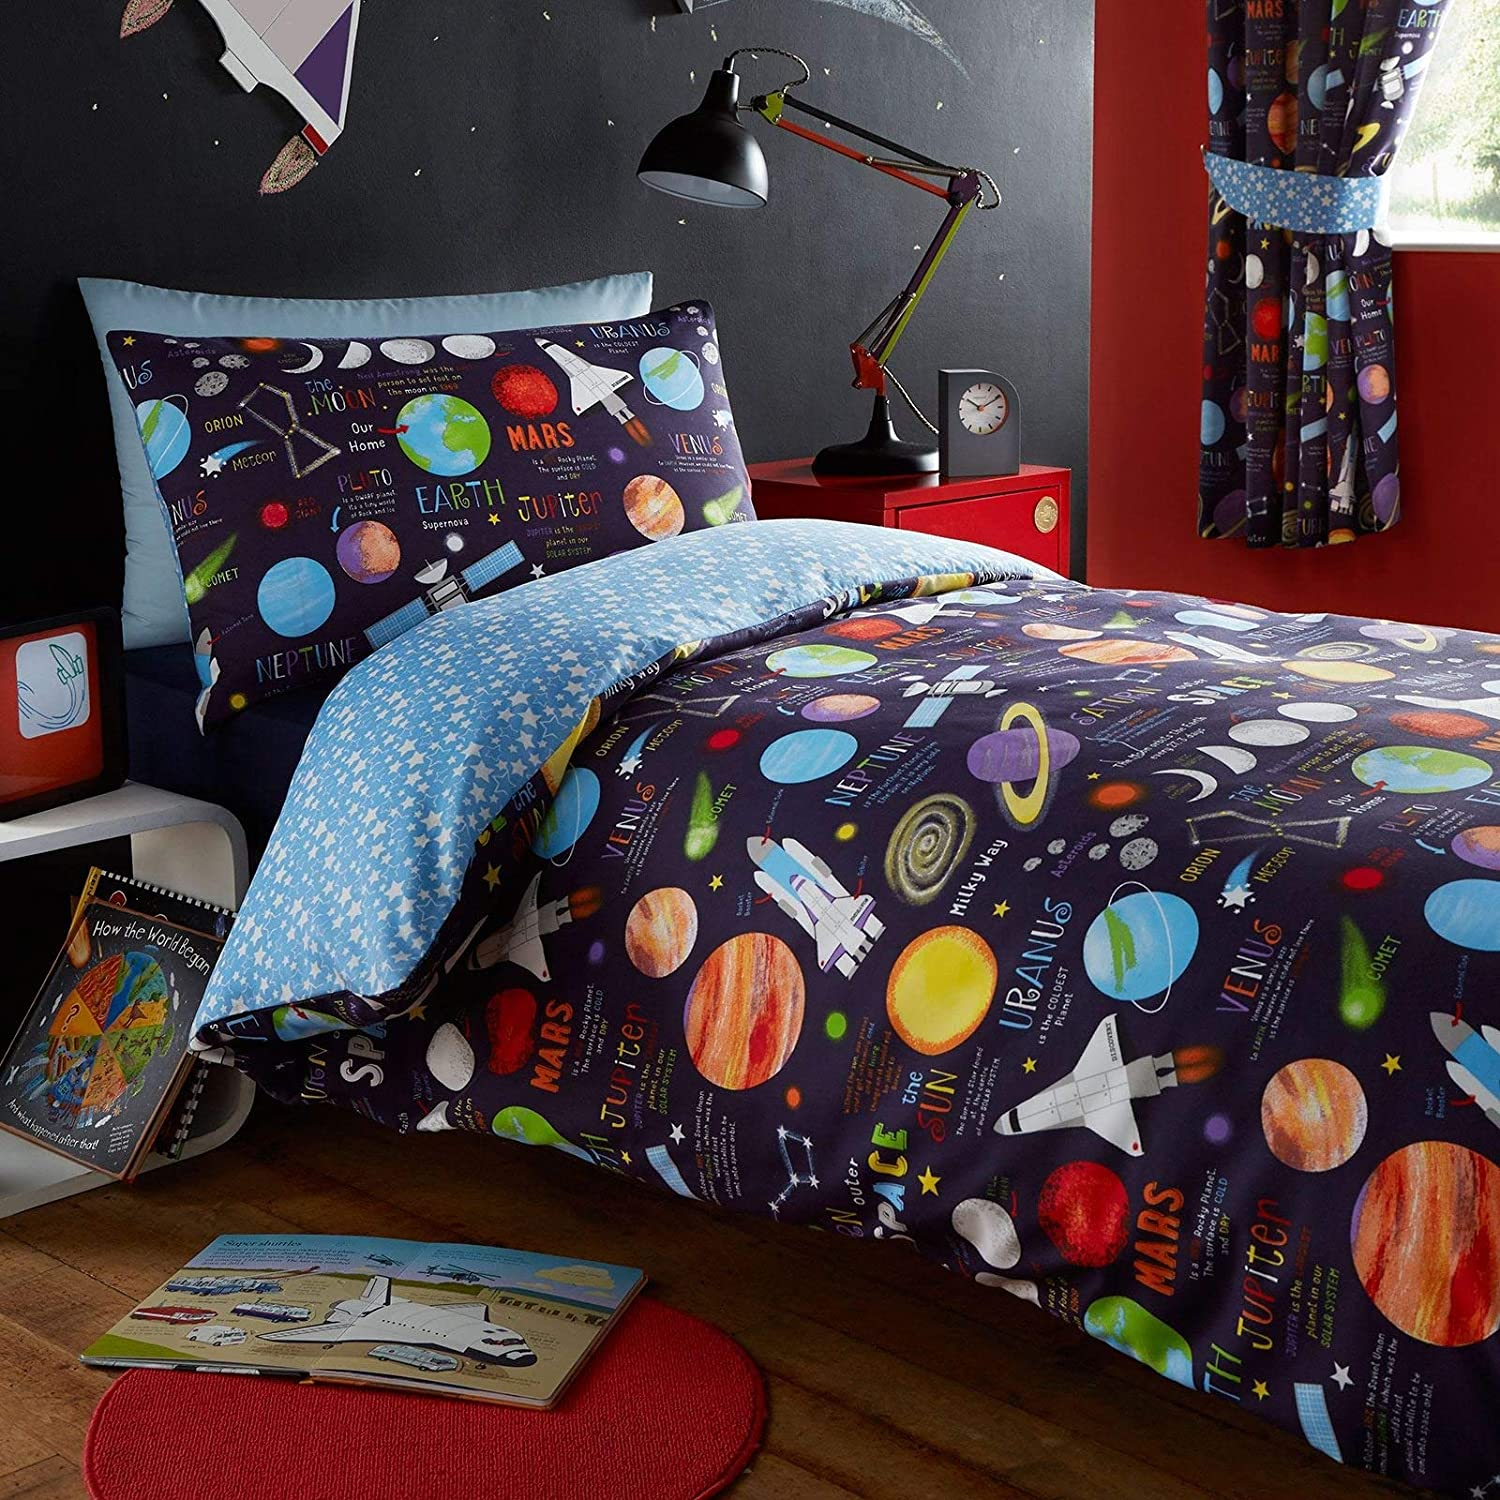 Kidz Club Planets Single Bed Duvet cover and Pillowcase Bed Set Bedding 42% OFF £14.04 @ Amazon